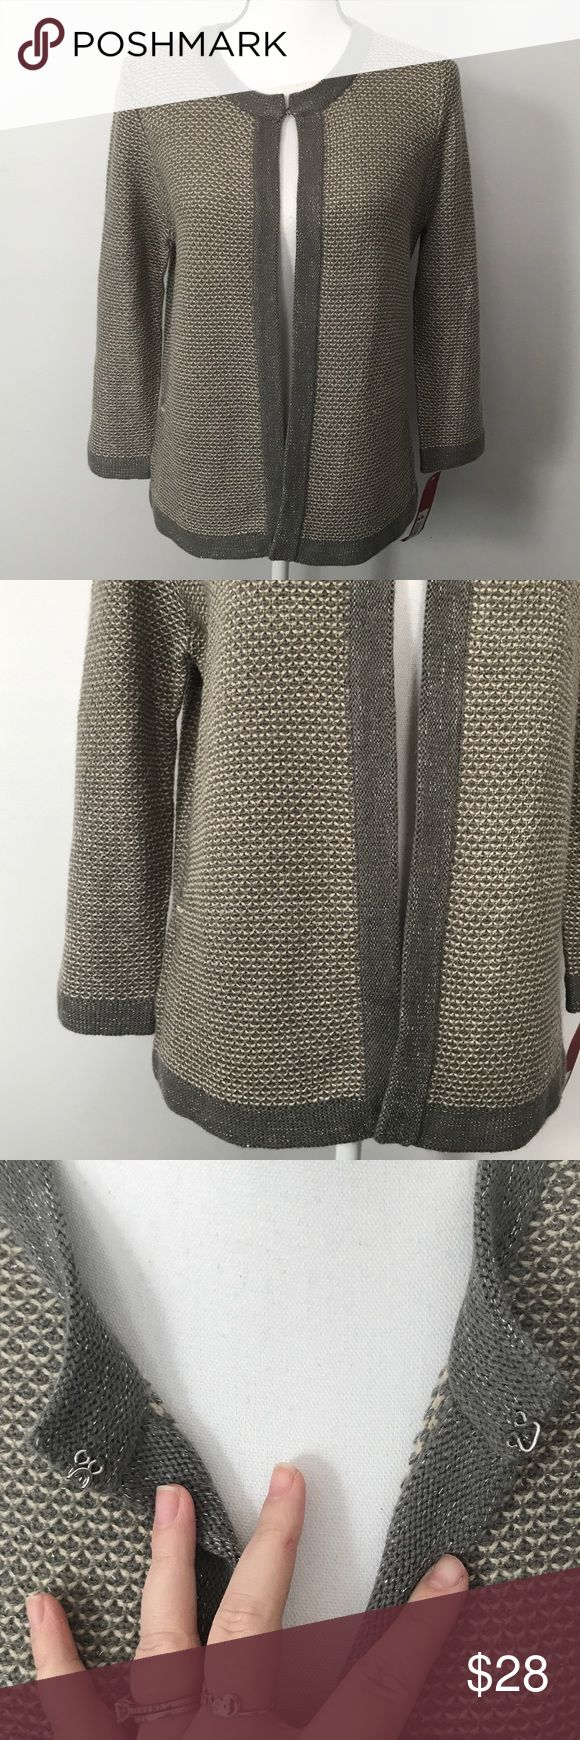 """NWT Merona Grey Silver Cardigan Sweater Jacket New with Tags Merona Grey Silver Cardigan 1 hook and loop button Closure at top Tag says """"sweater jacket grey"""" Size Medium 22"""" underarm to underarm measured flat  24"""" long Small pull on side - see pic Merona Sweaters Cardigans"""